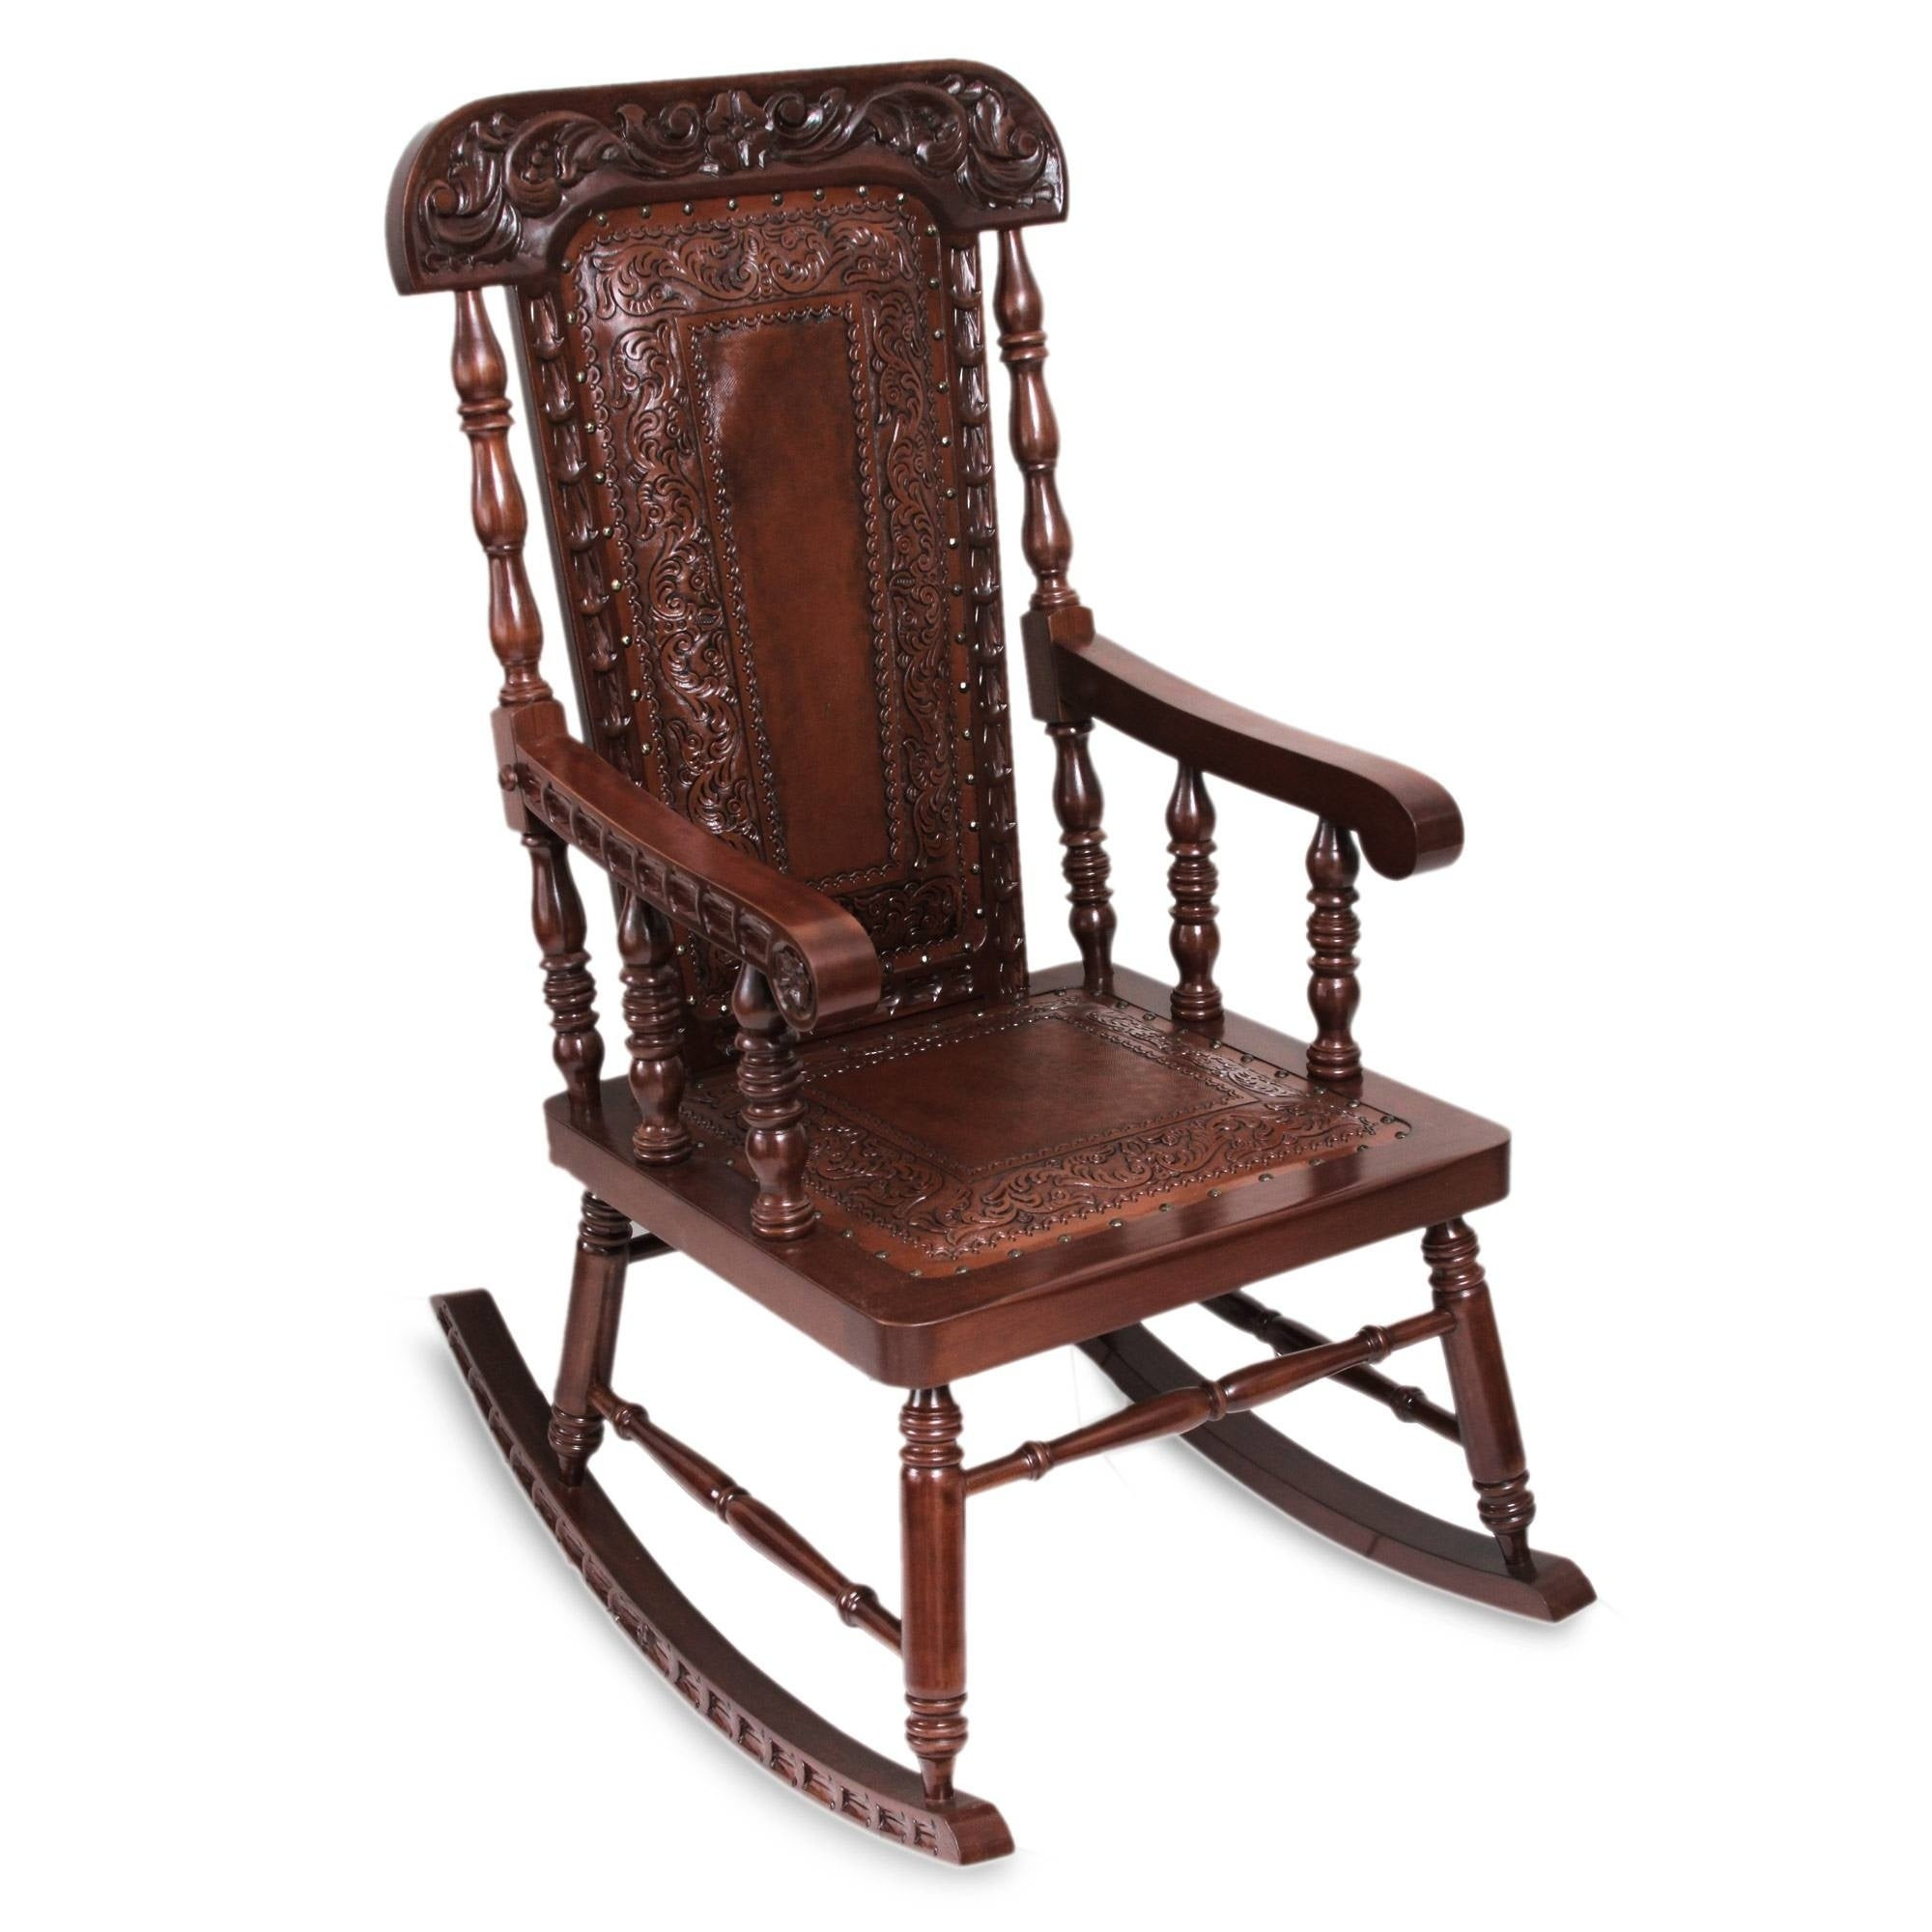 Handmade Nobility Cedar And Leather Rocking Chair (Peru) Regarding Dark Oak Wooden Padded Faux Leather Rocking Chairs (#9 of 20)